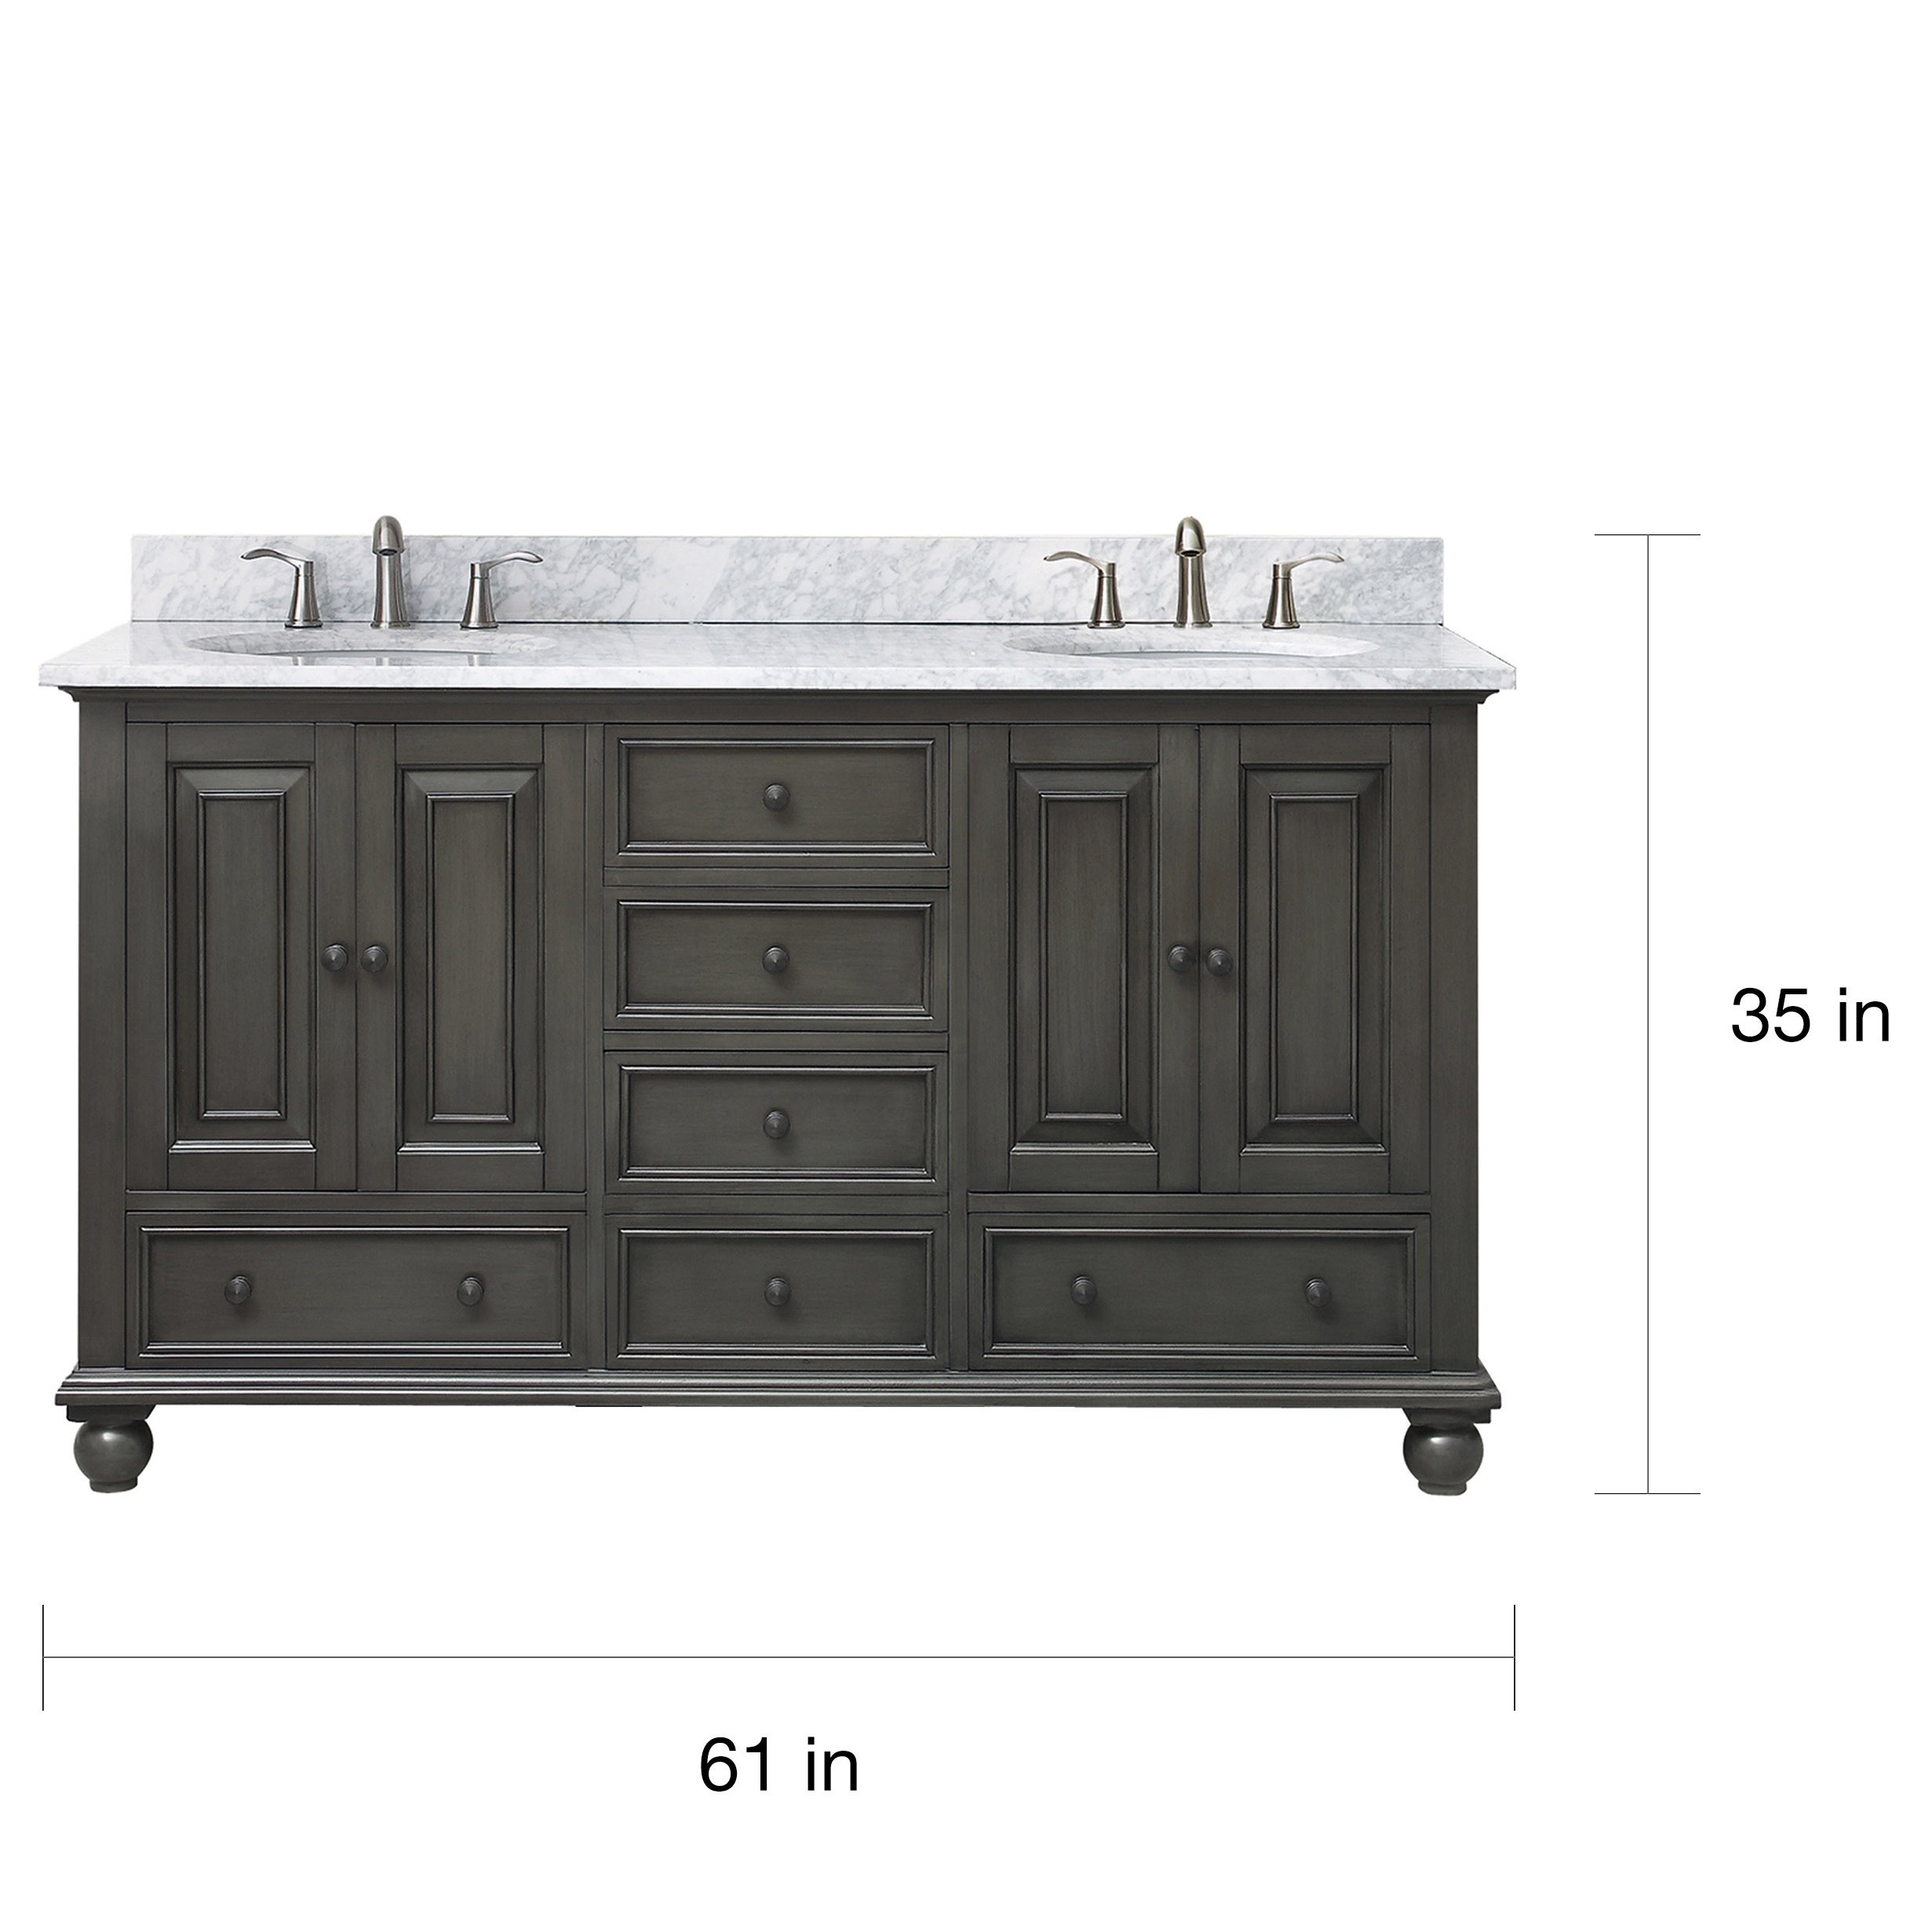 Avanity Thompson 61 Inch Double Sink Vanity Combo In Charcoal Glaze Finish